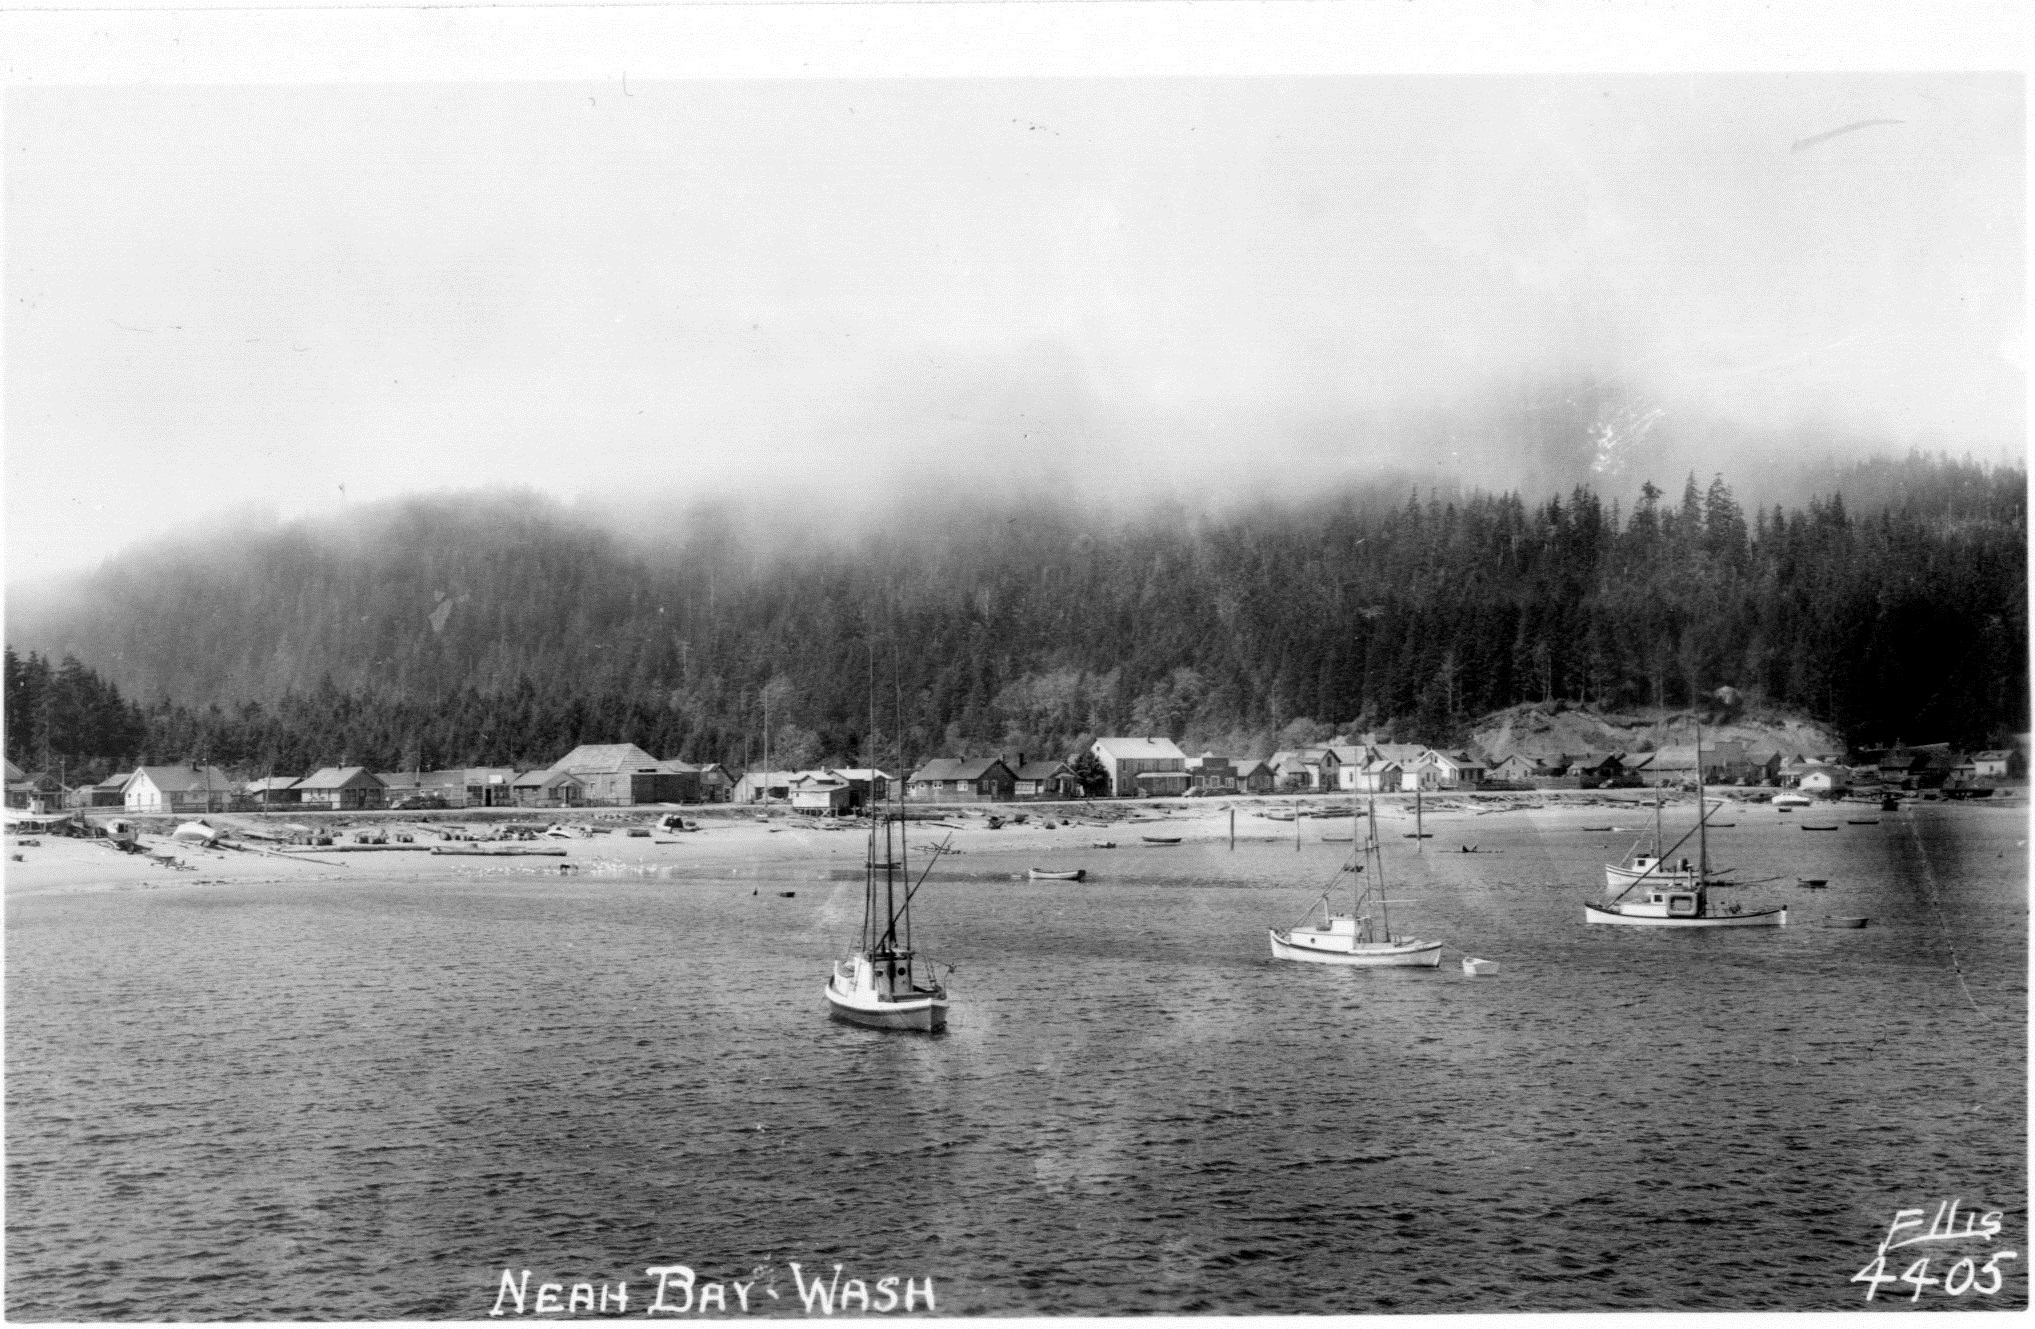 A photo postcard of Neah Bay, ca. 1950.